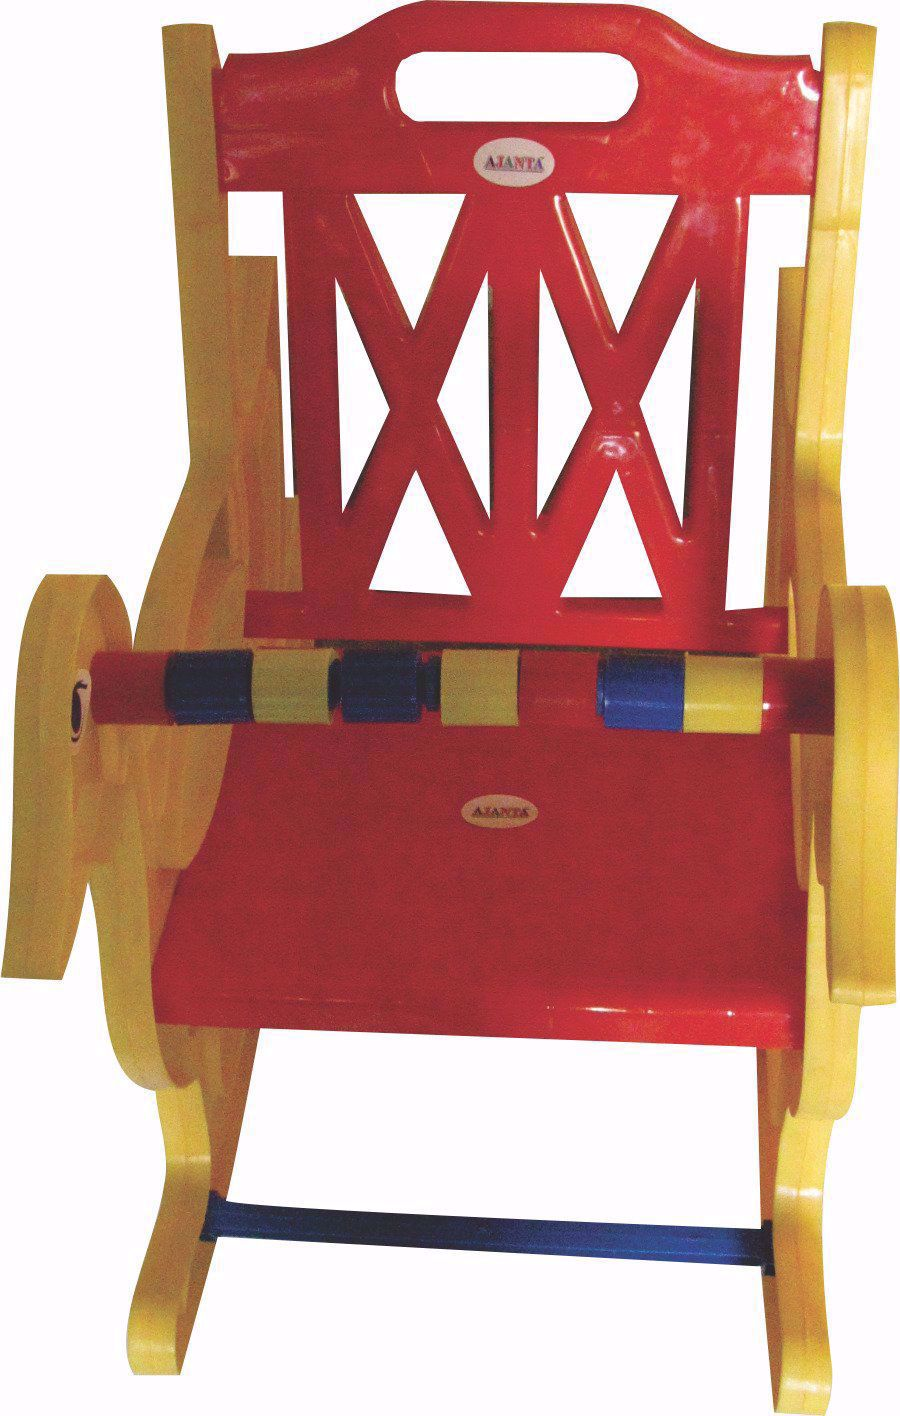 Baby Rocking Chair Yellow & Red